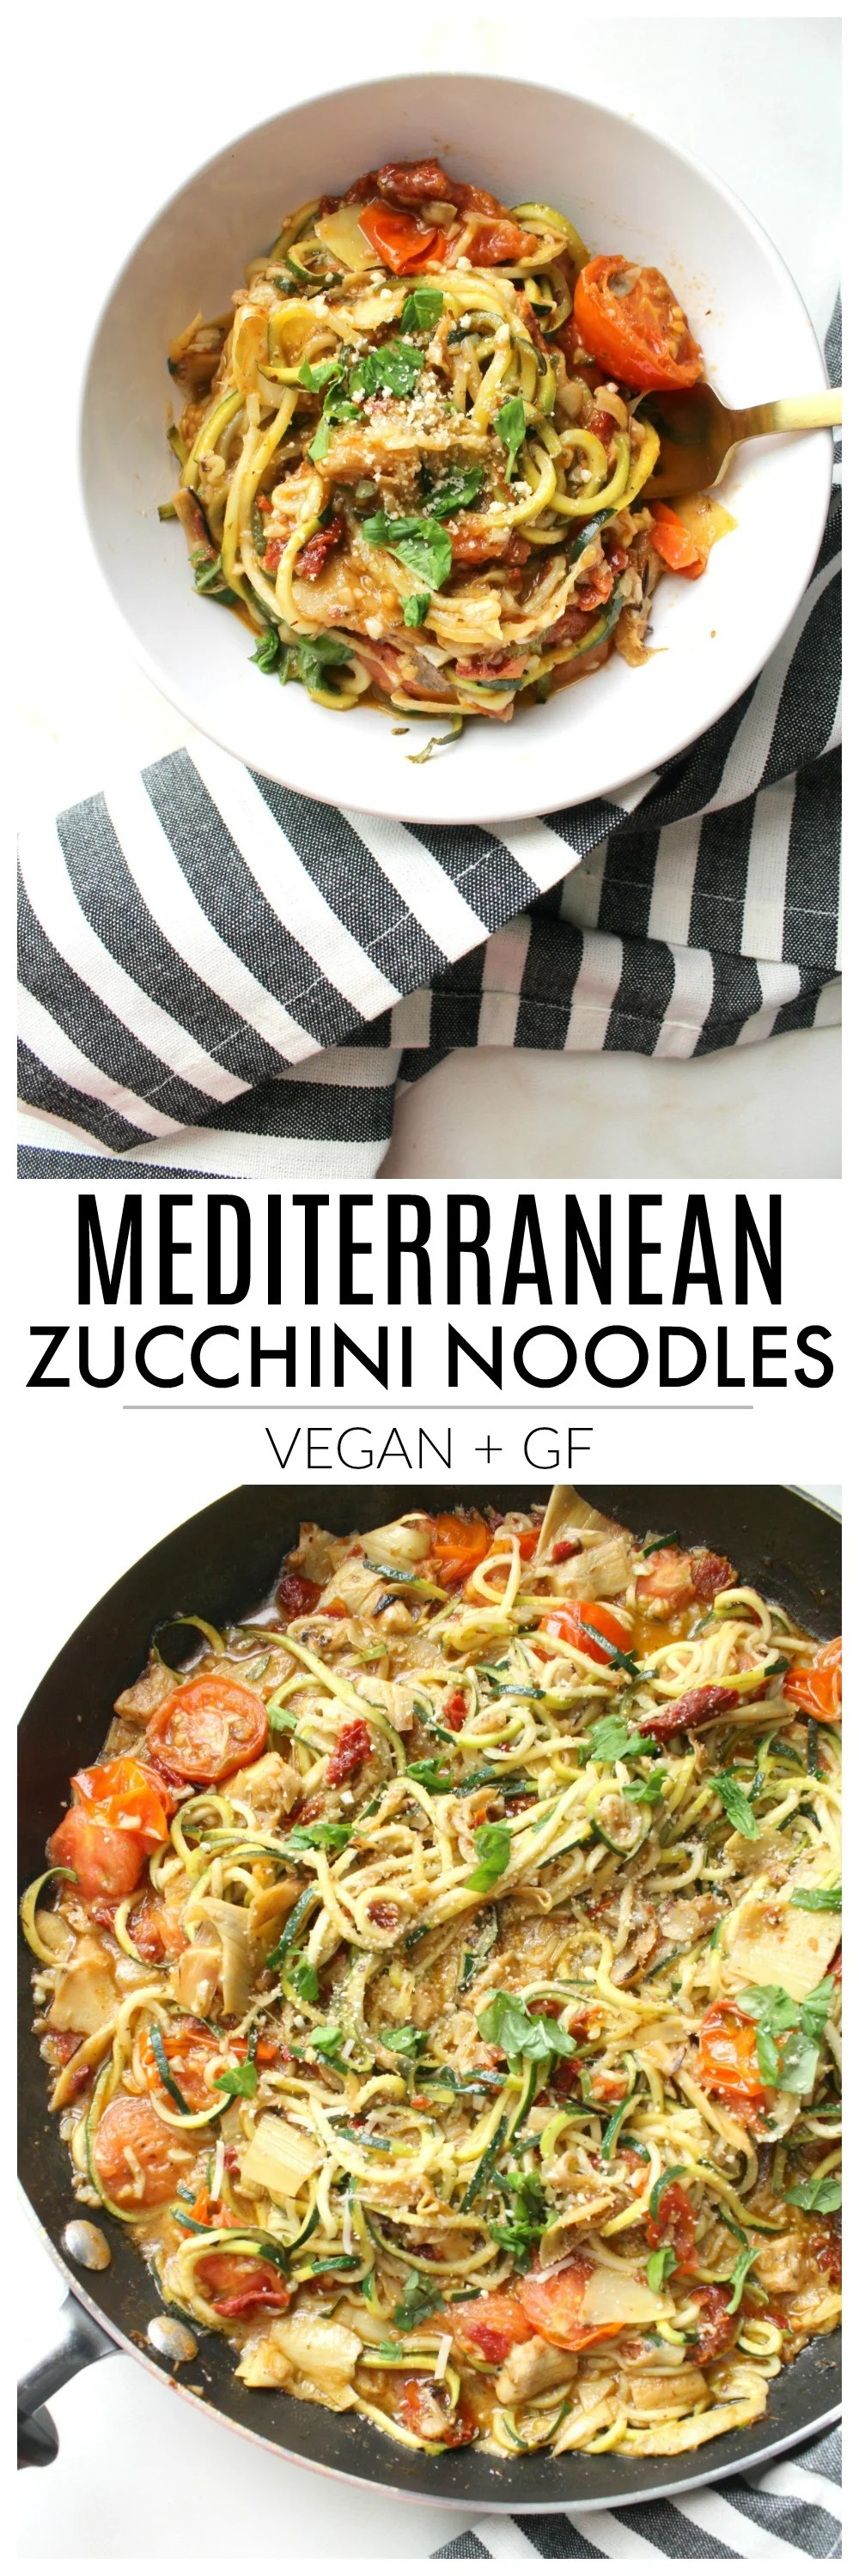 """Lighten up """"pasta night"""" with theseMediterranean Zucchini Noodles. A simple dinner recipe that combines cherry tomatoes, sun-dried tomatoes & artichoke hearts 